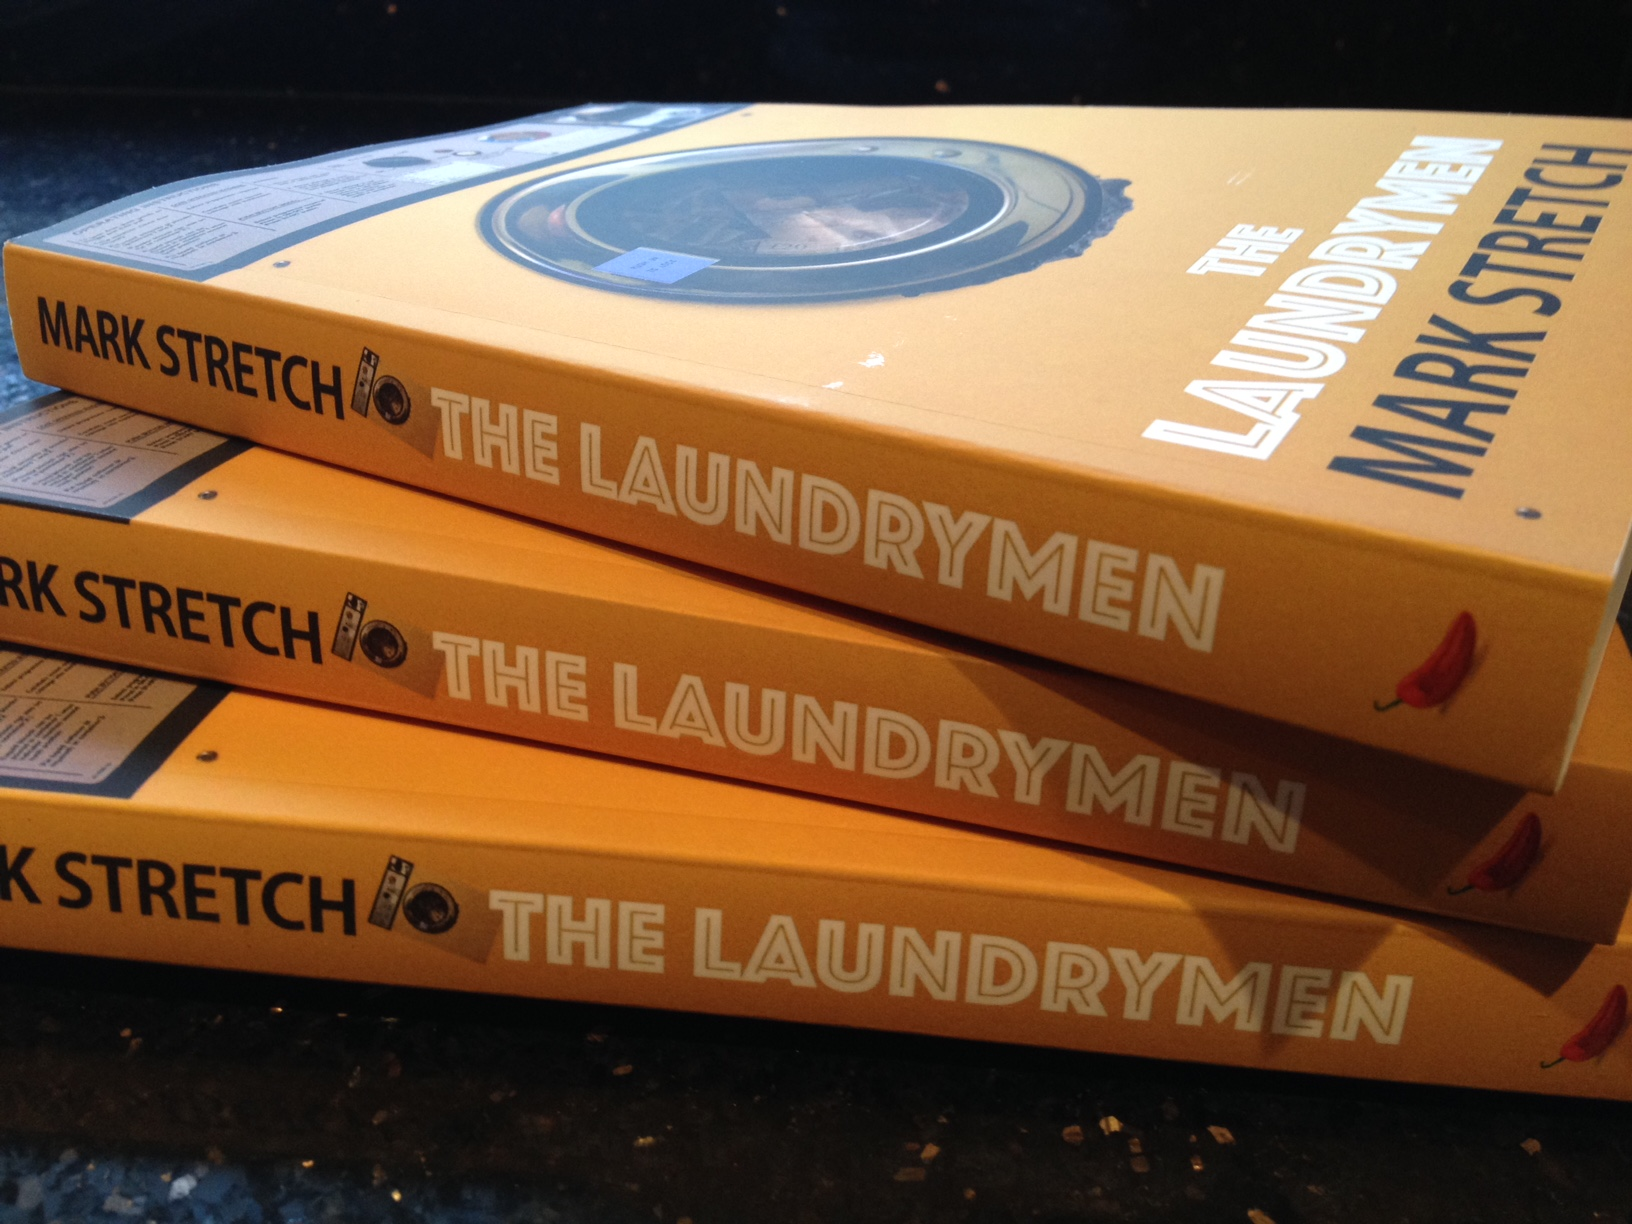 Proof copies of The Laundrymen have arrived.